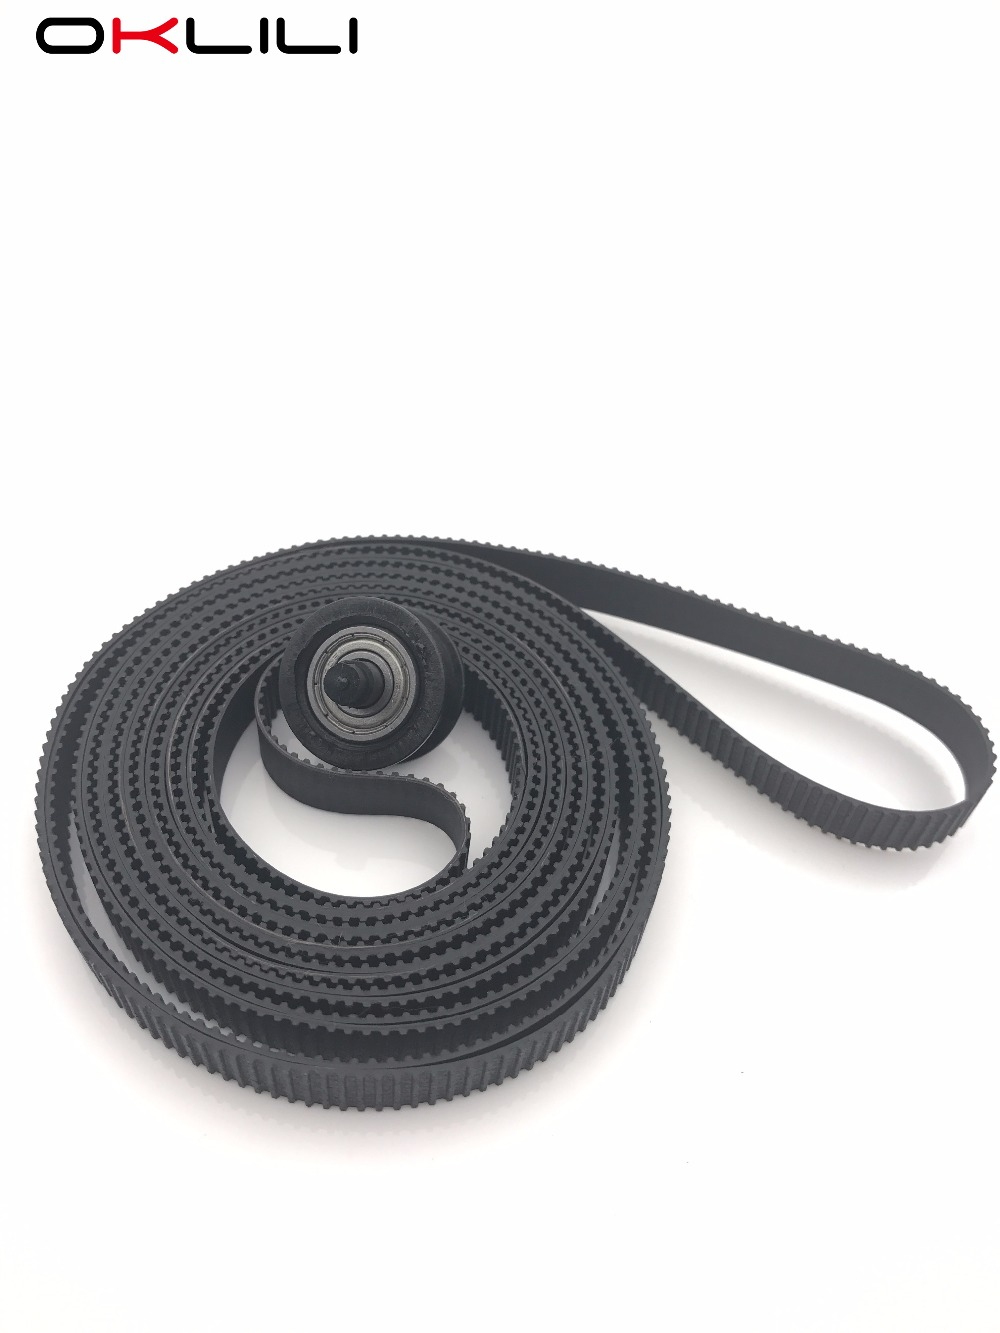 Q6659 60175 Scan Axis Carriage Belt 44 for HP DesignJet T1100 T1120 T1120PS T1200 T610 T620